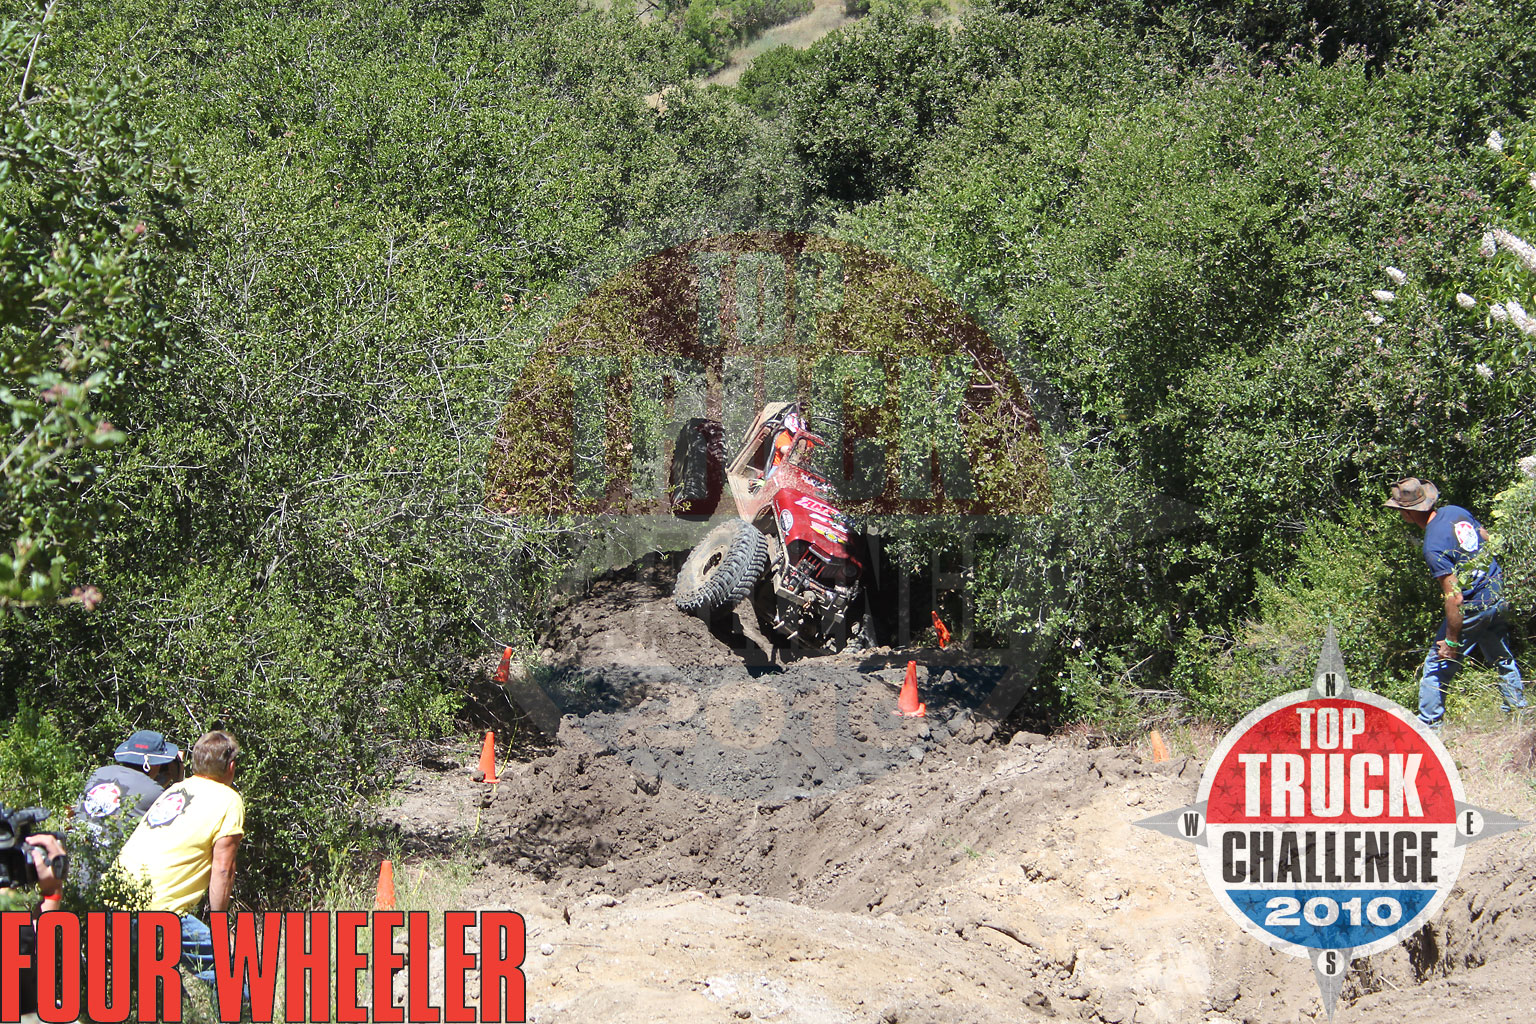 129 1006 4728+2010 top truck challenge hill climb+pj hale 1948 willys buggy